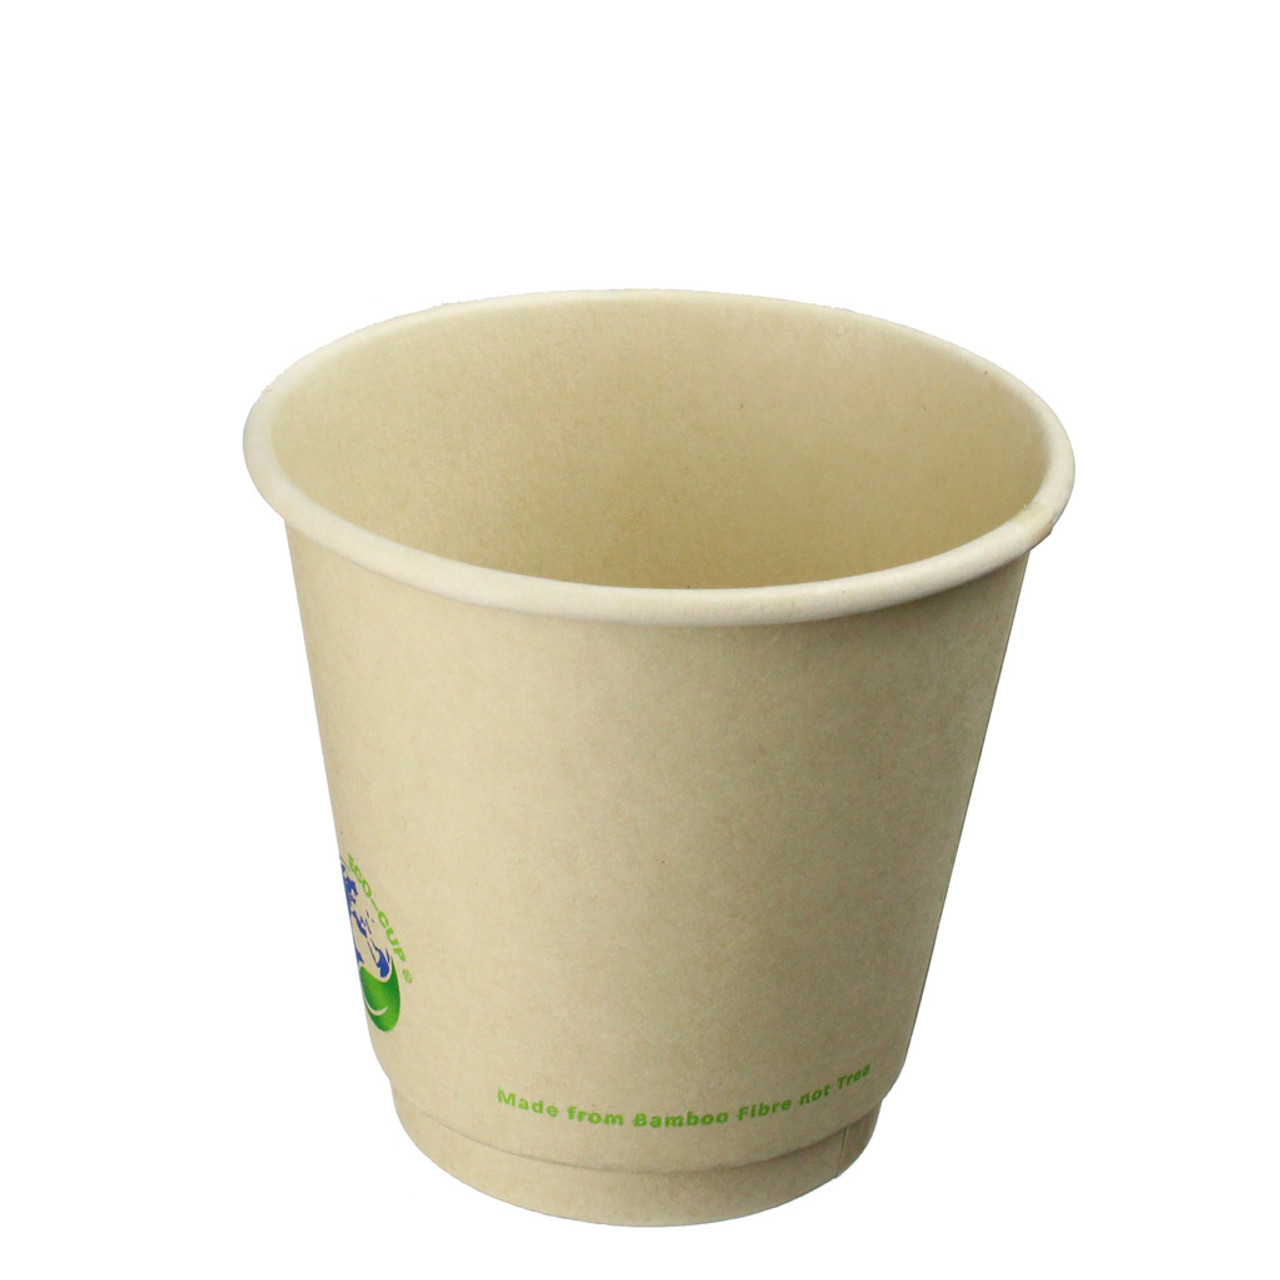 Compostable 8oz Bamboo Fiber Coffee Cups